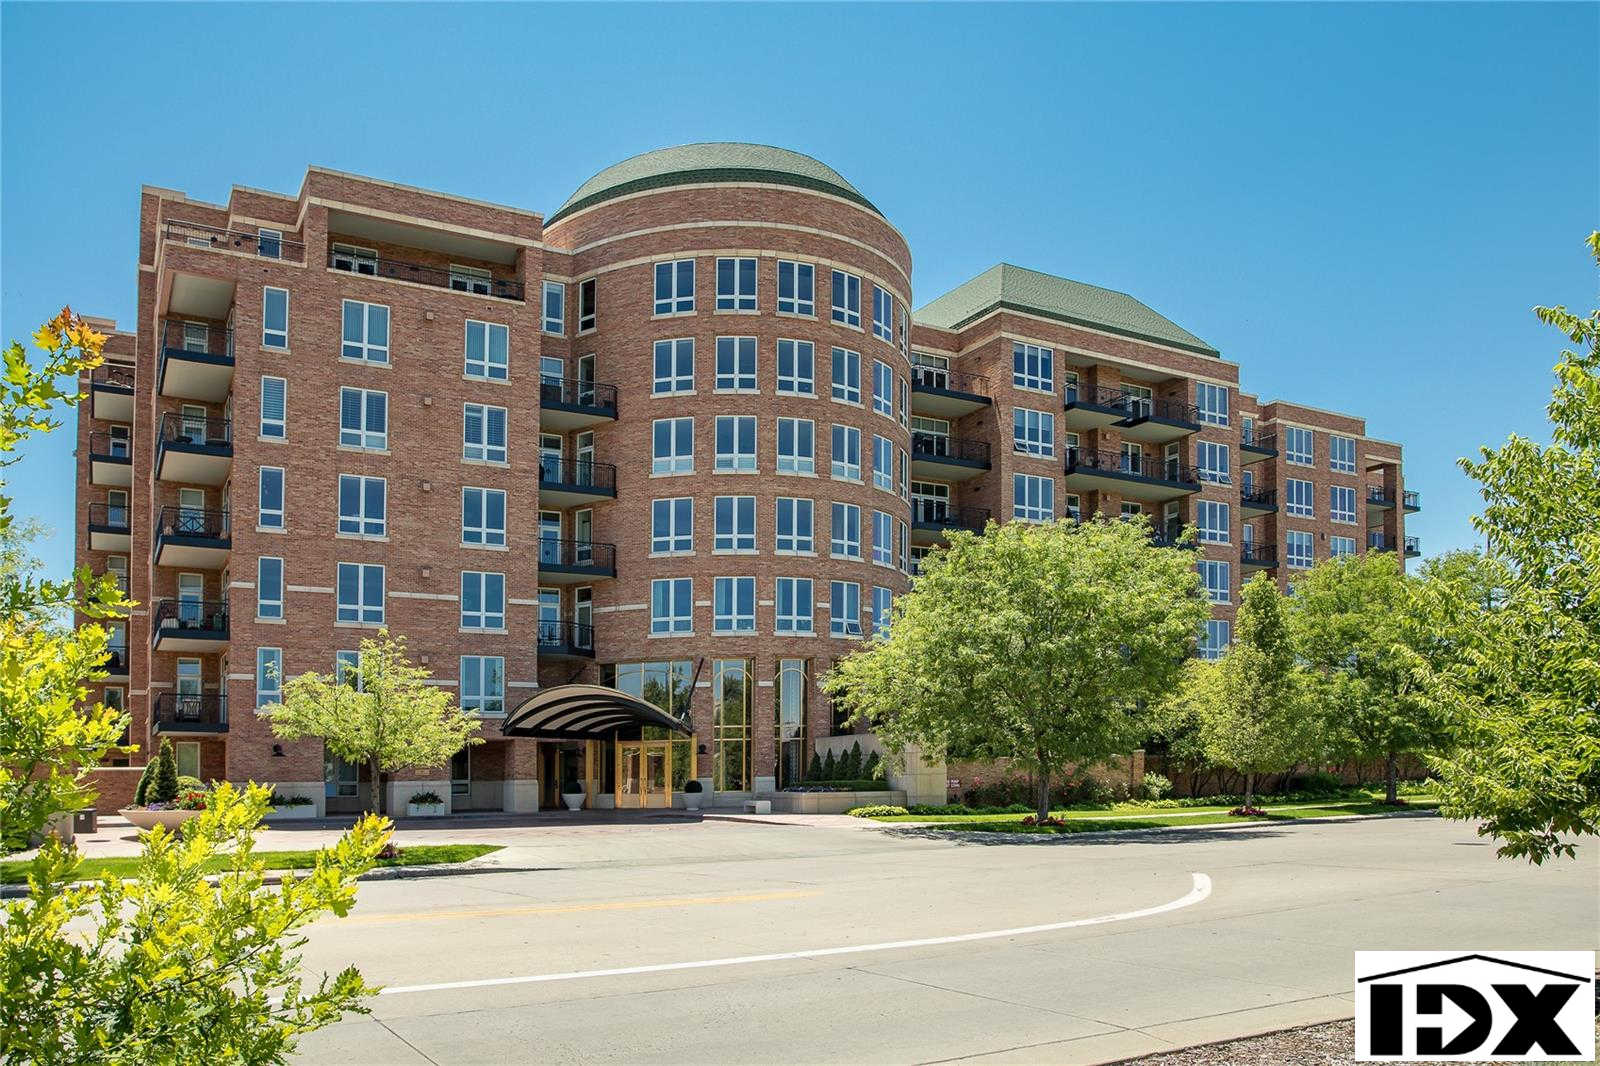 2400 East Cherry Creek South Drive #110, Denver, CO 80209 now has a new price of $945,000!